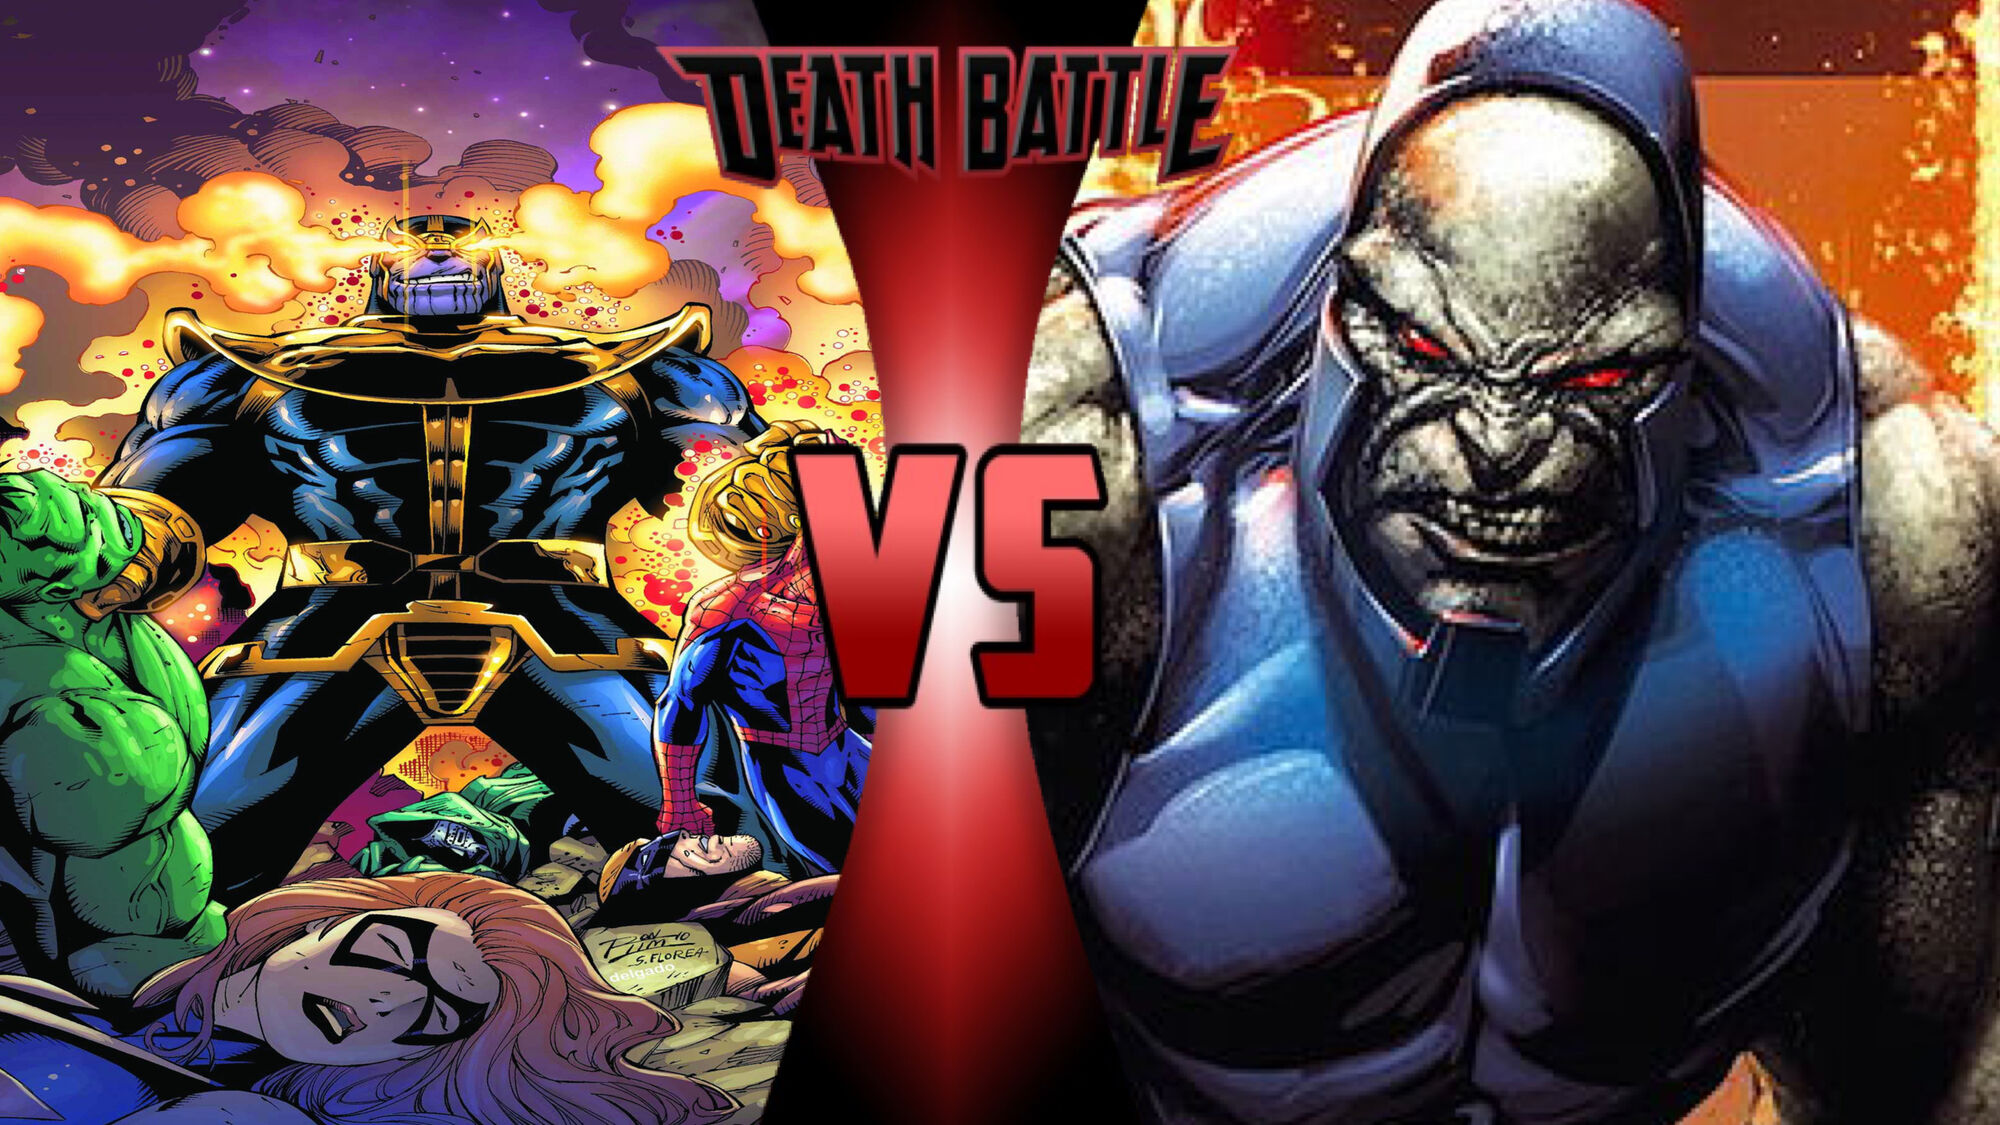 Thanos Darkseid Death Battle - Thanos m